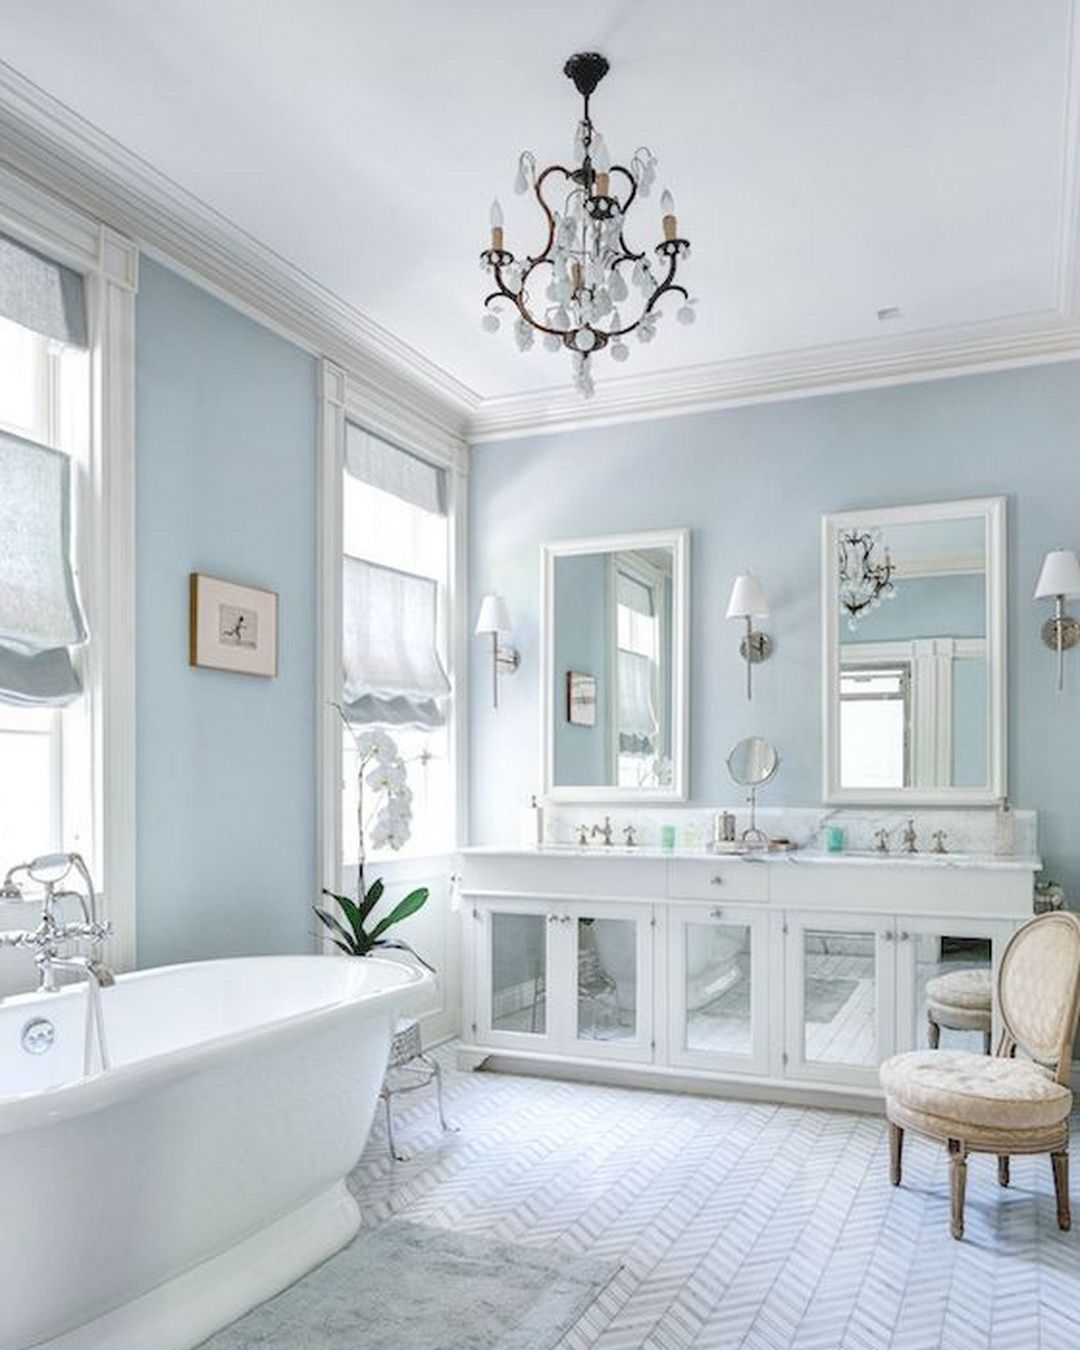 12 Luxurious Bathroom Design Ideas | French vanity, Blue bath and ...